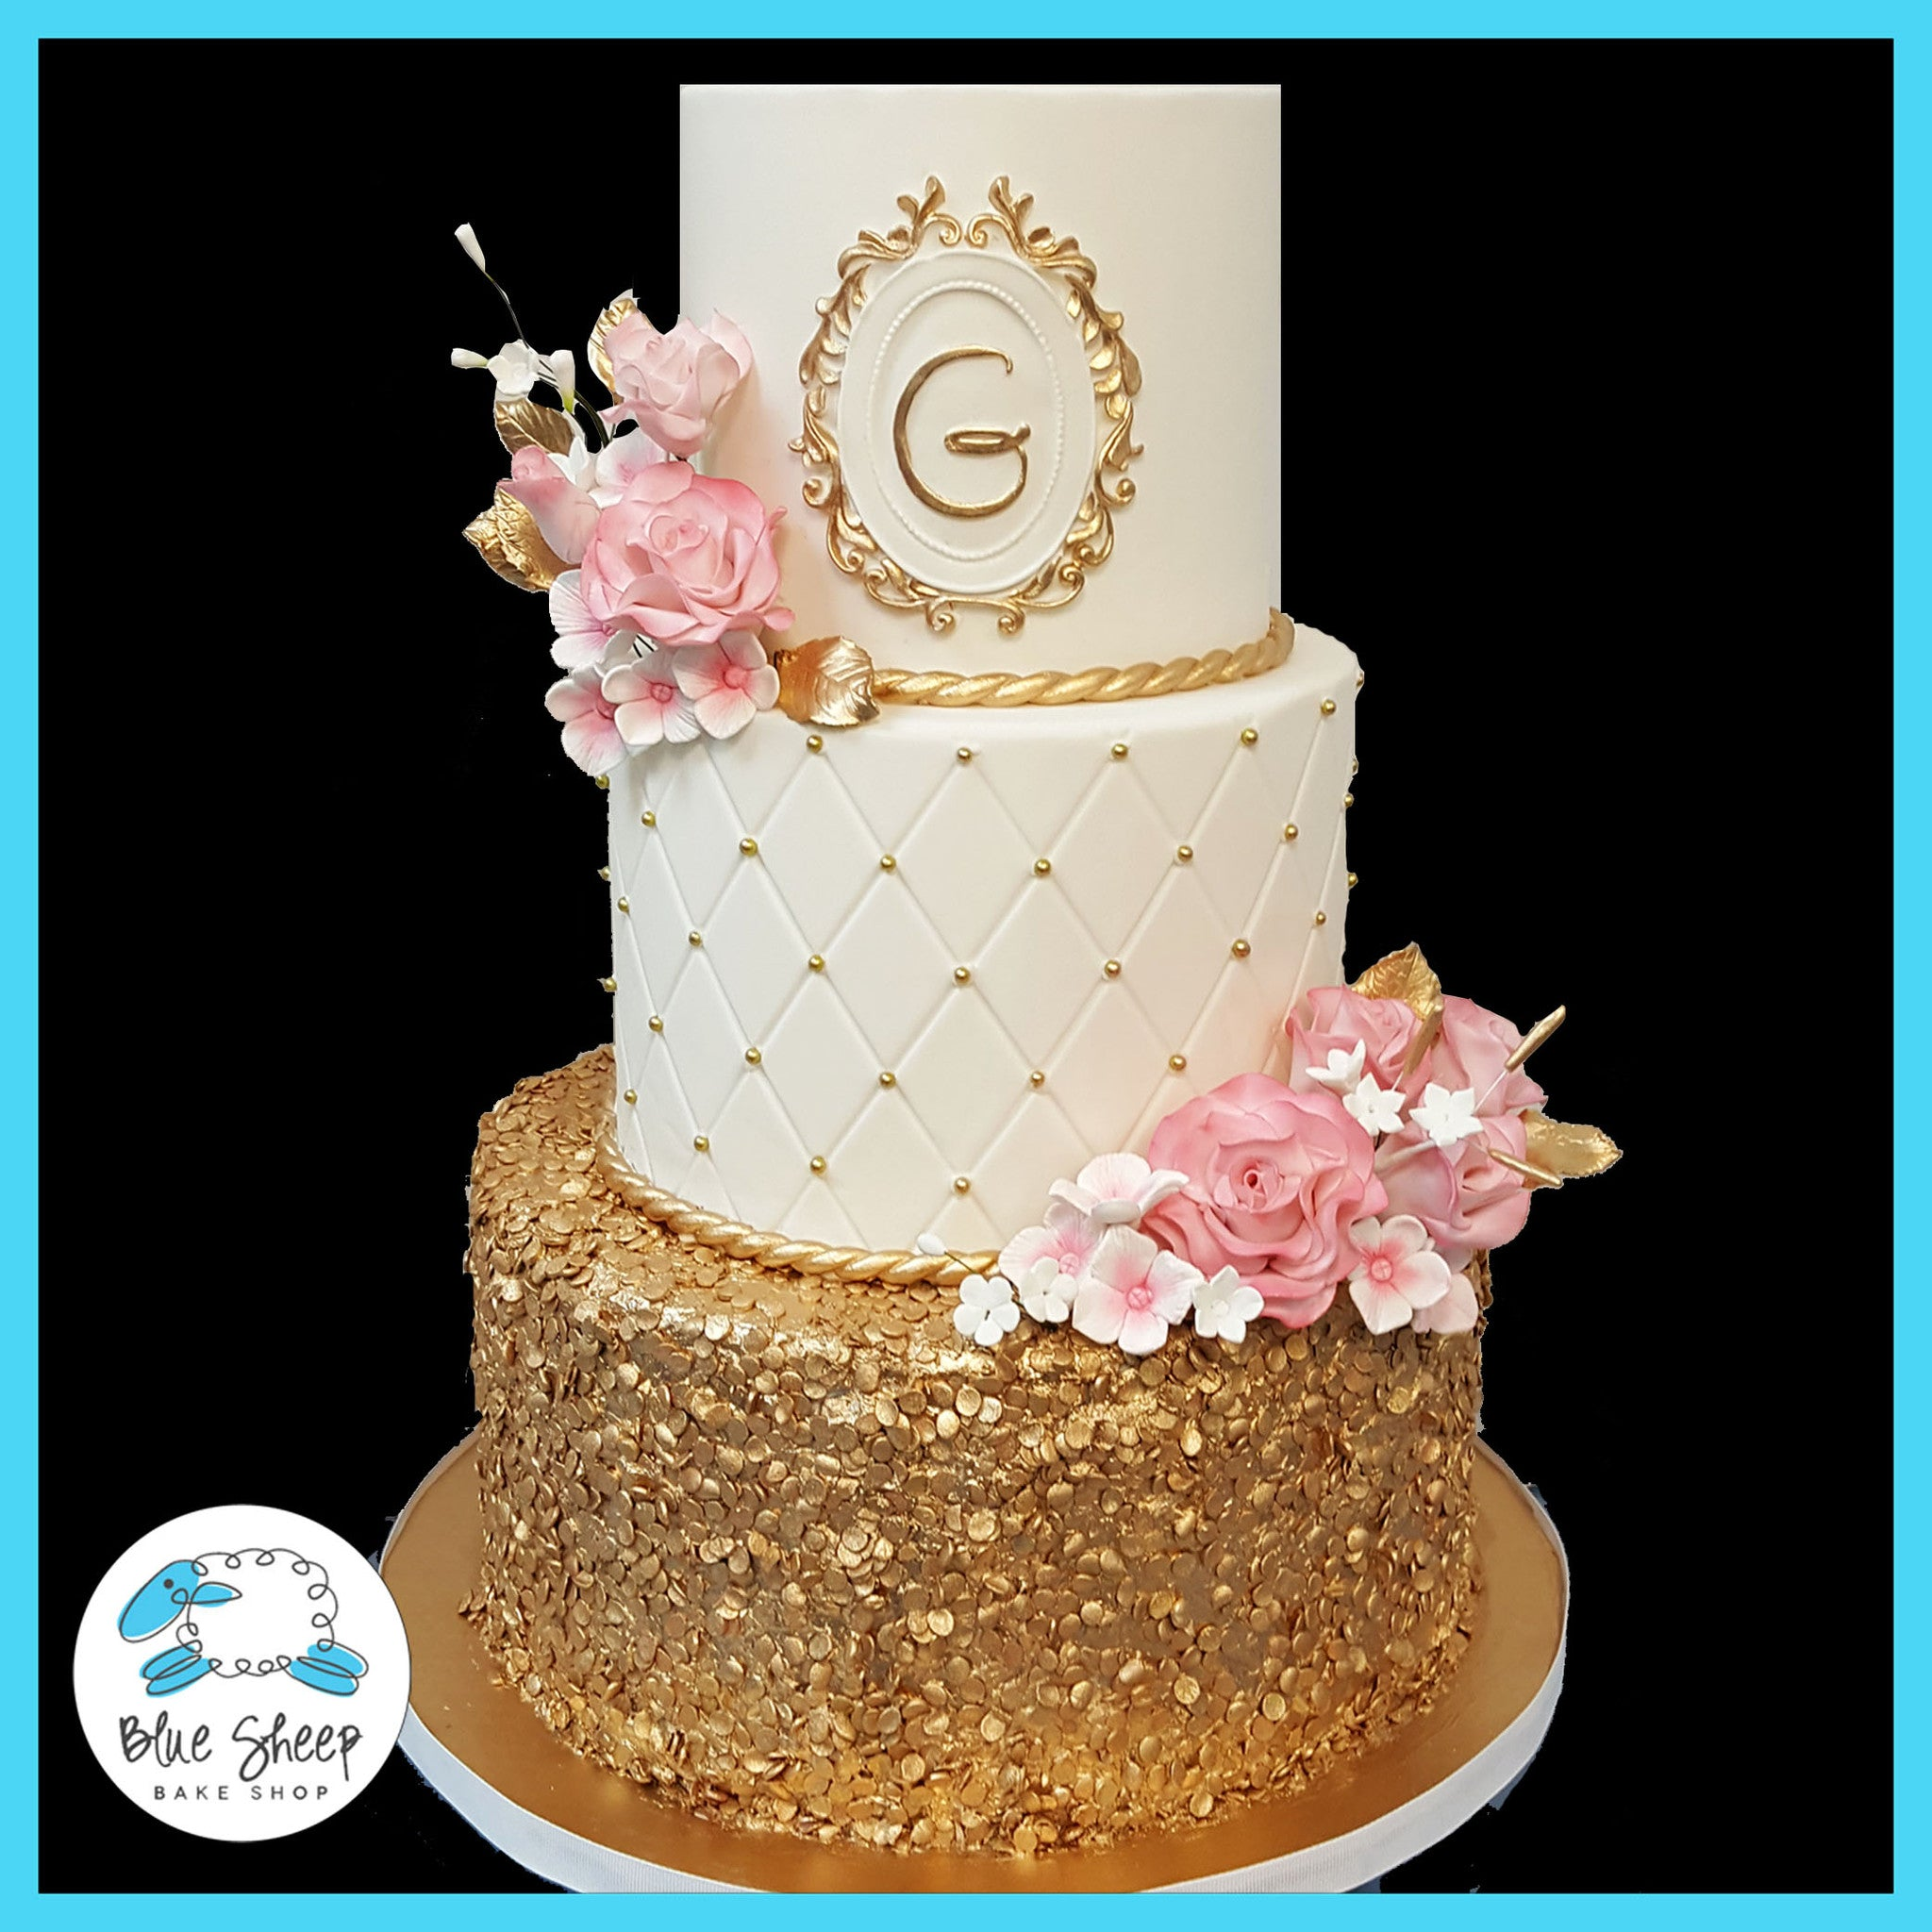 Pink and Gold Wedding Cake NJ | Blue Sheep Bake Shop